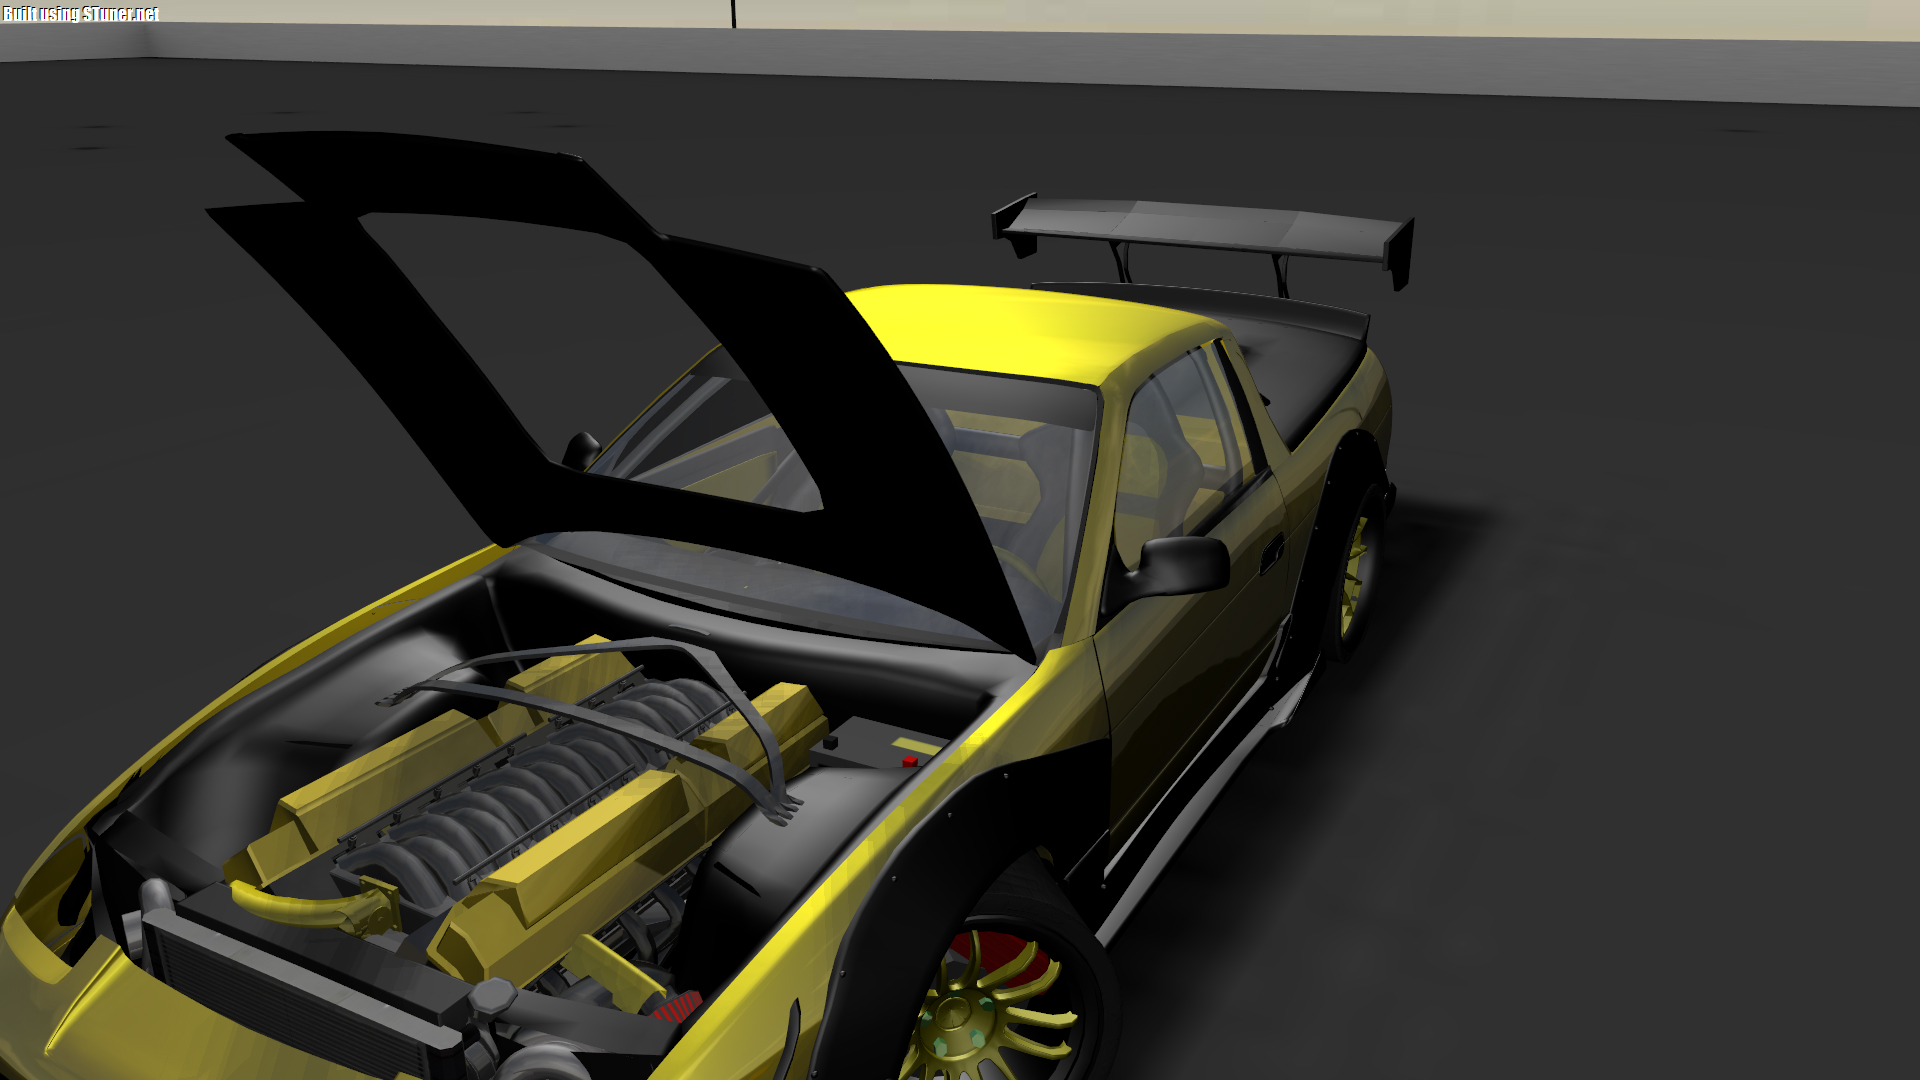 Look what I do in S-tuner. S13 with V20 engine! Not 20 valves in 5 ...